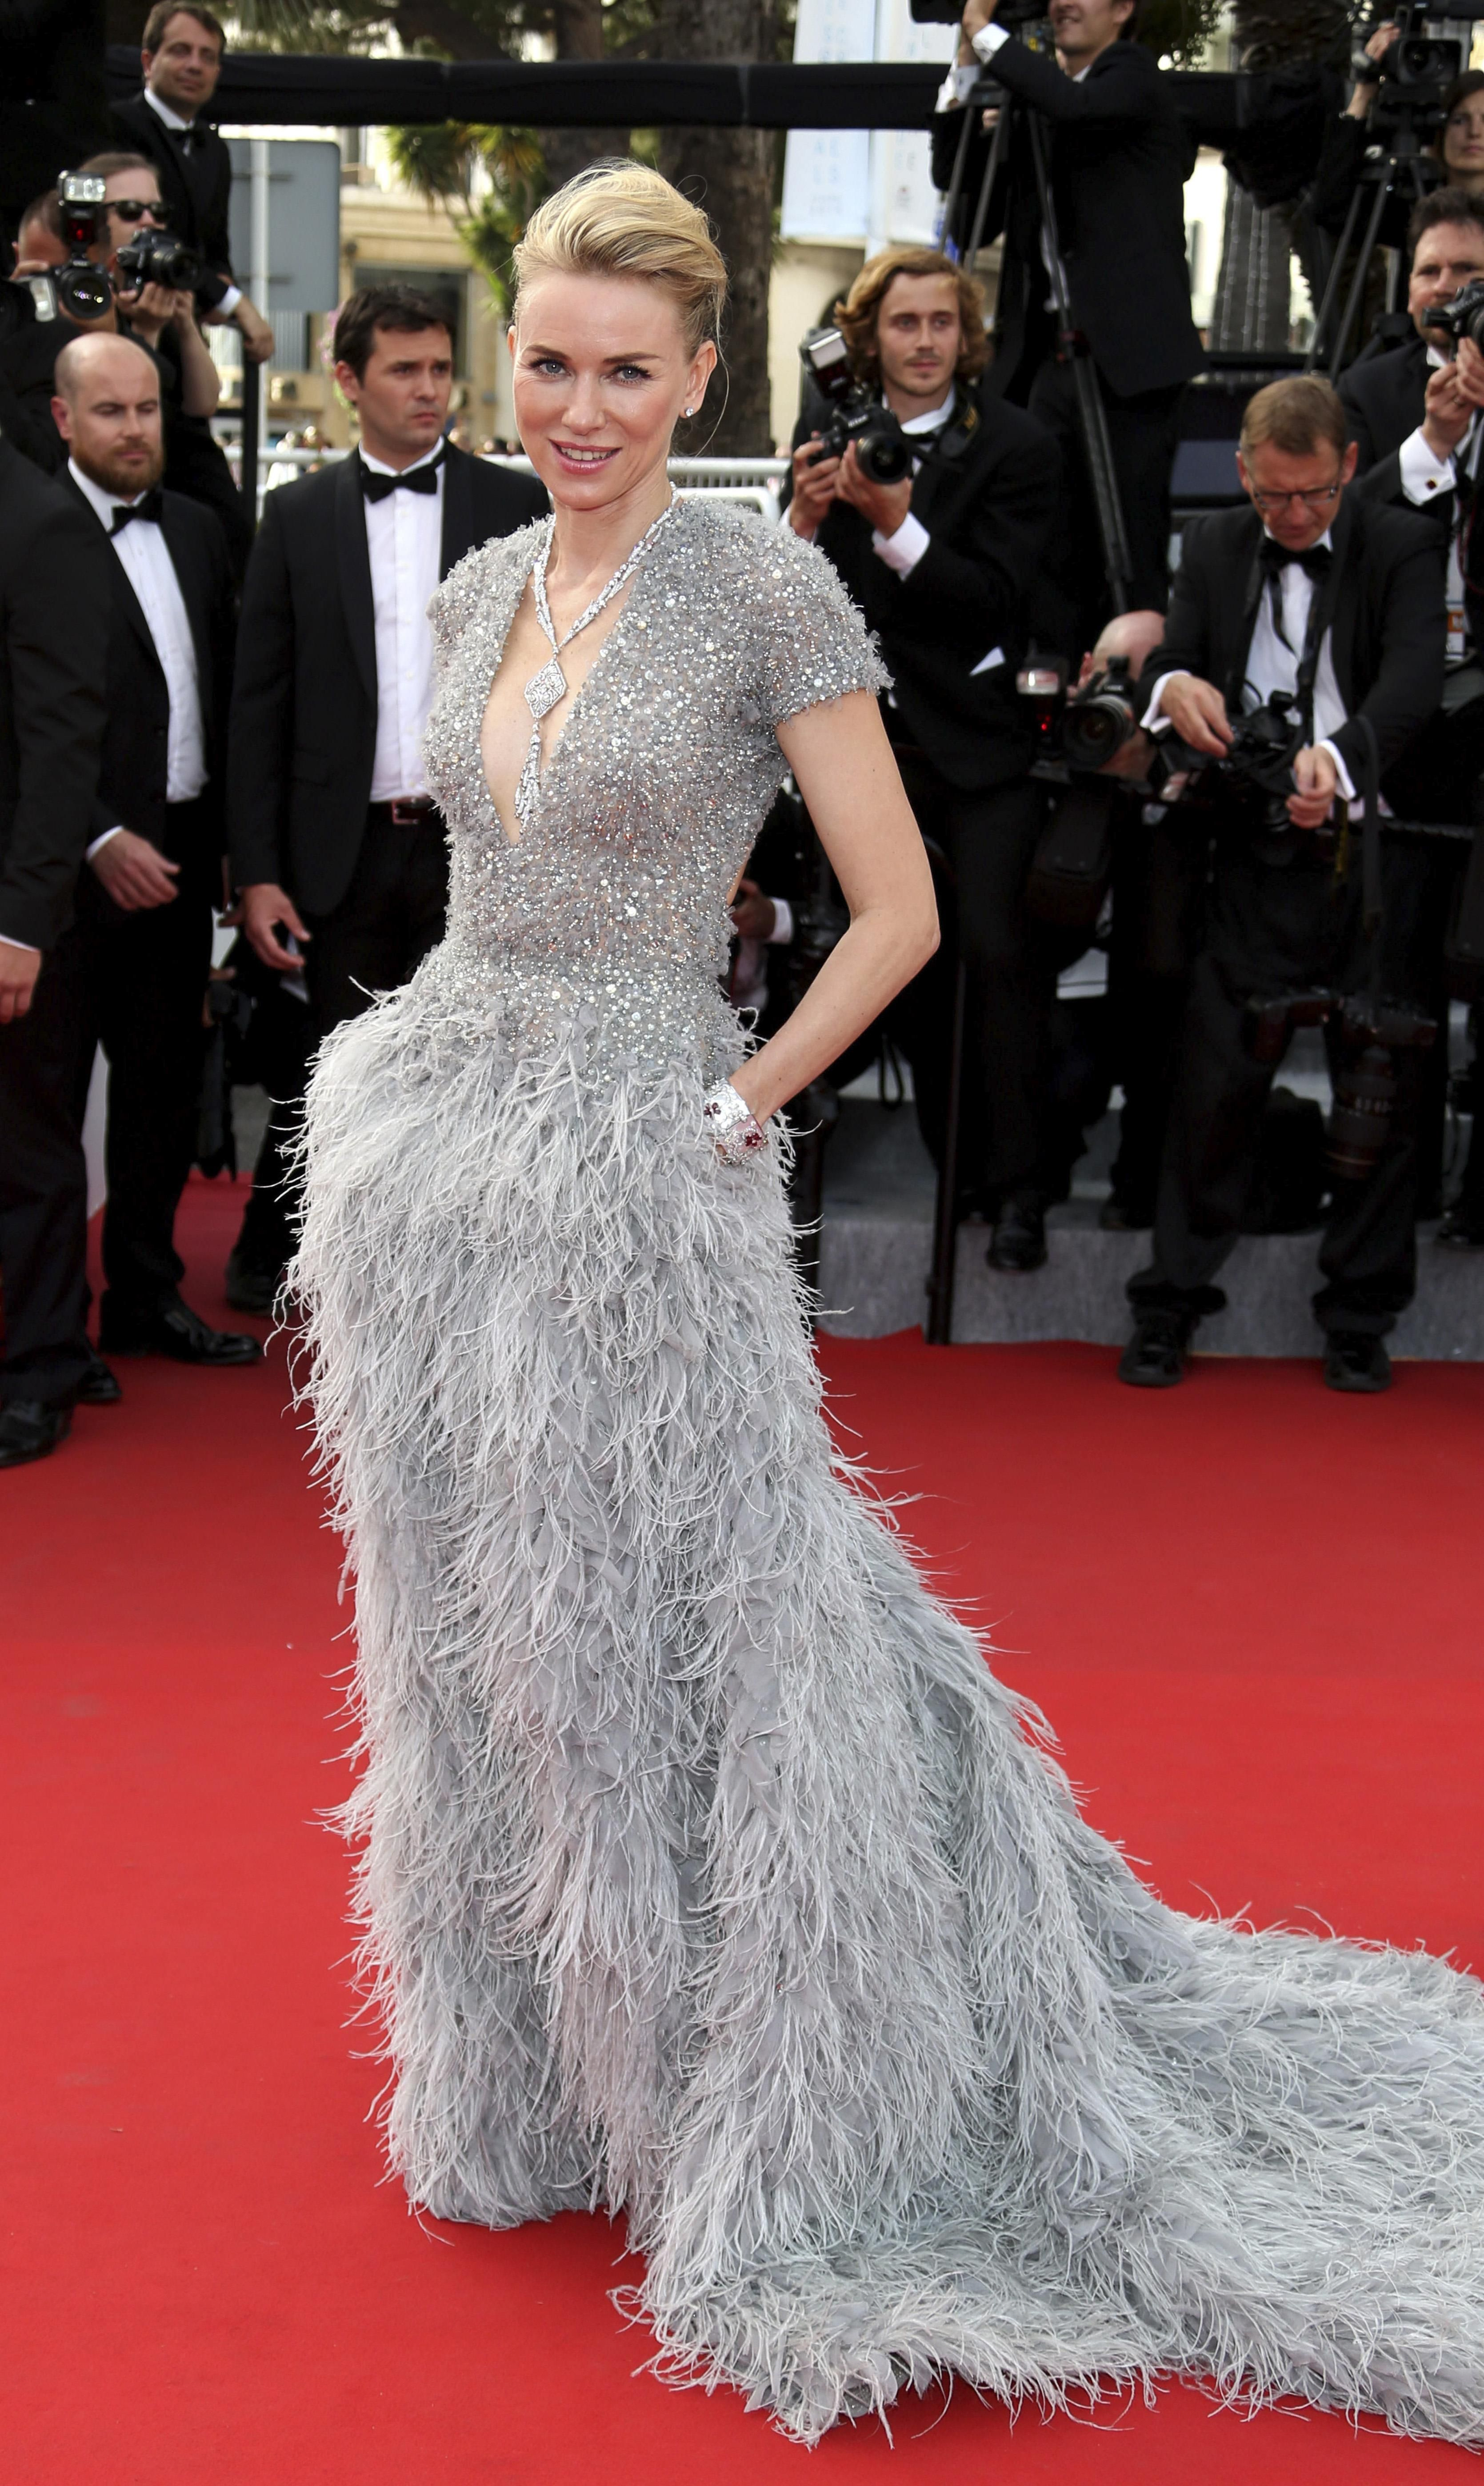 Cannes Film Festival 2015: All of the Best Red Carpet Dresses - Naomi Watts in Elie Saab   StyleCaster